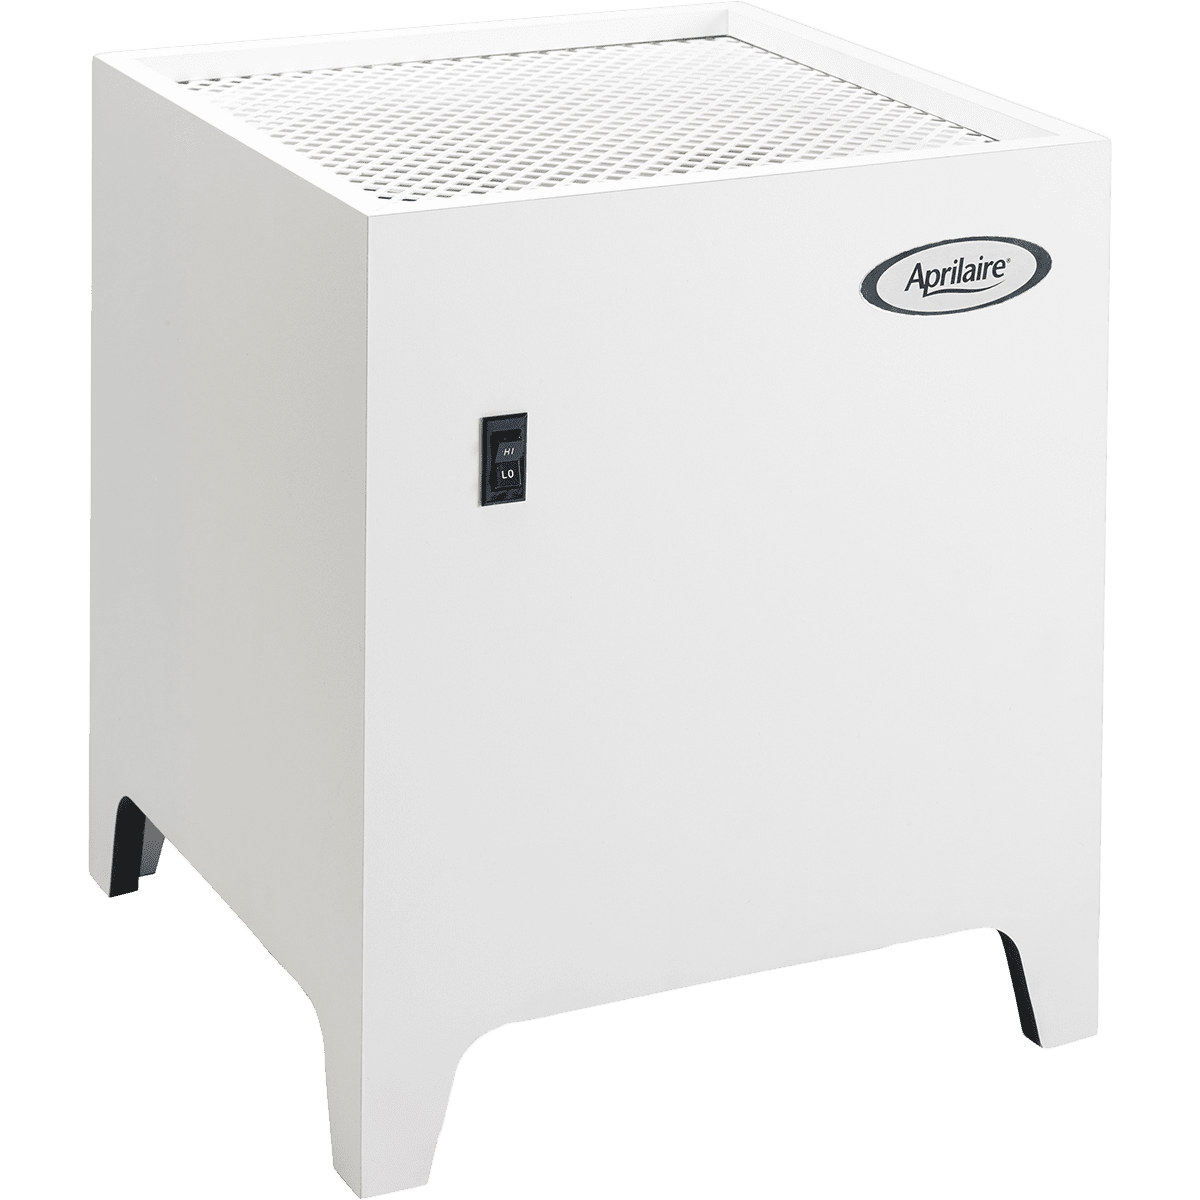 Aprilaire 2275 Portable Air Cleaner Sylvane